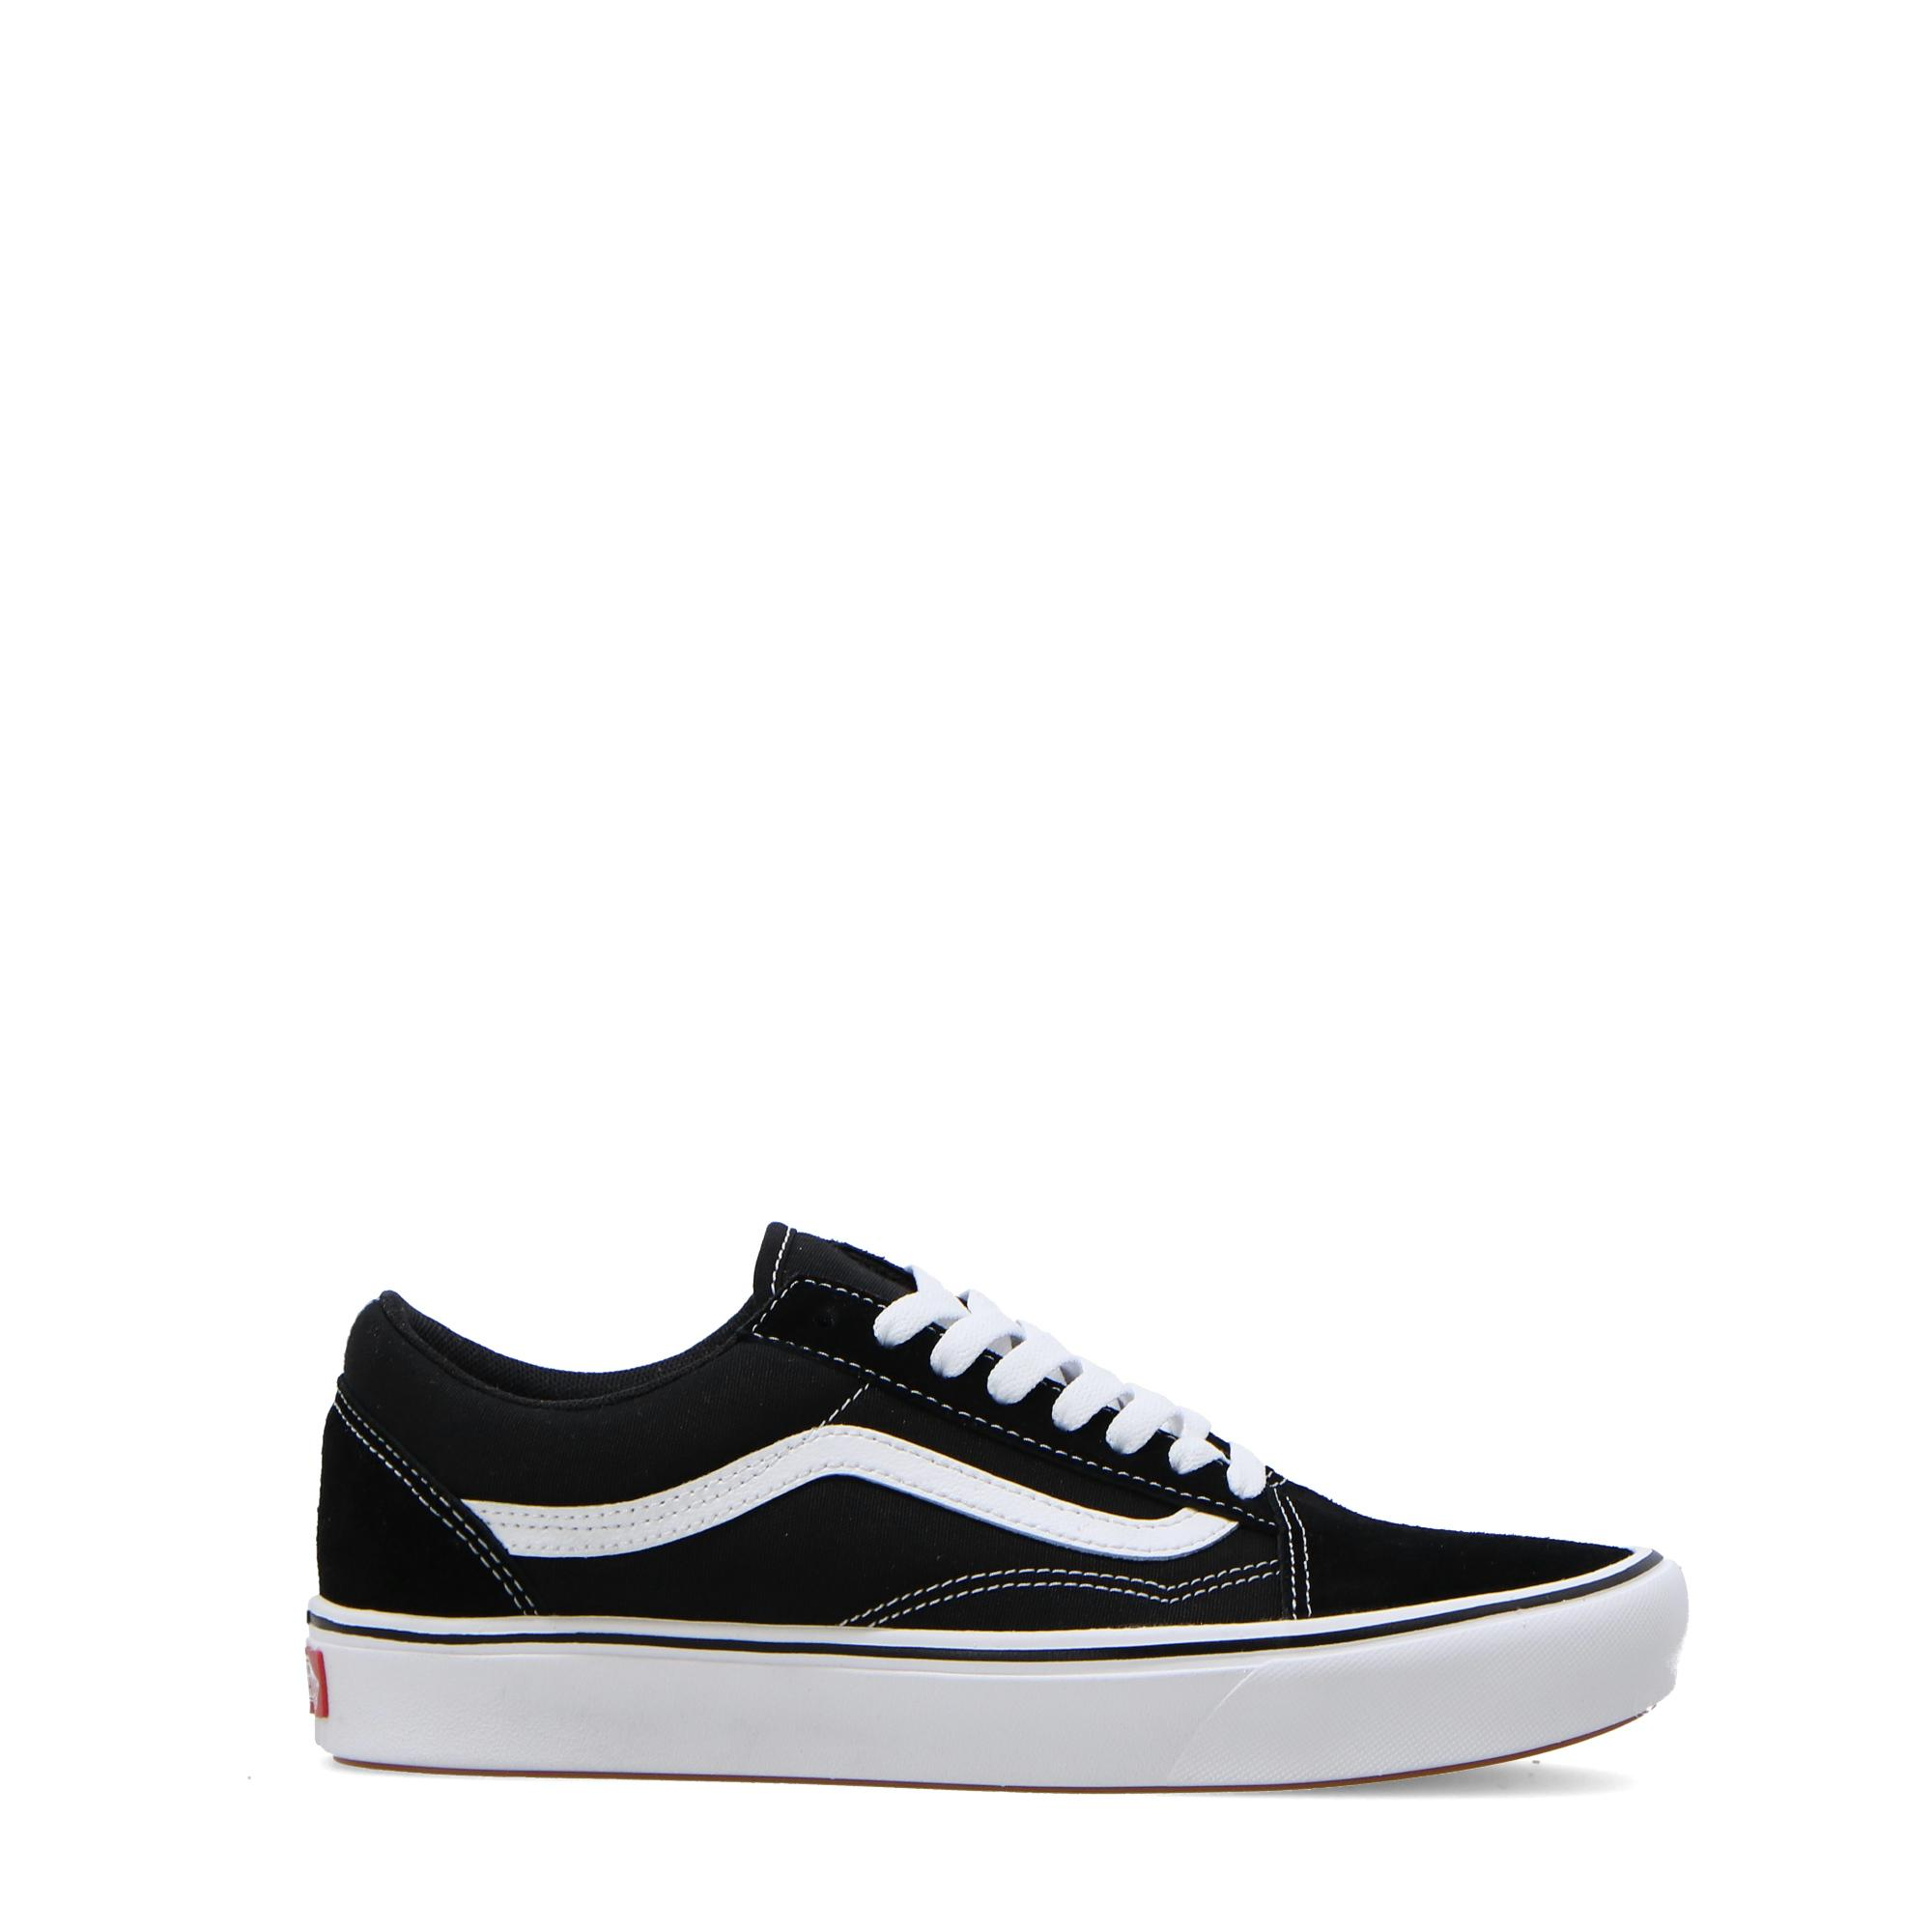 Vans Ua Comfycush Old Skool Black true white